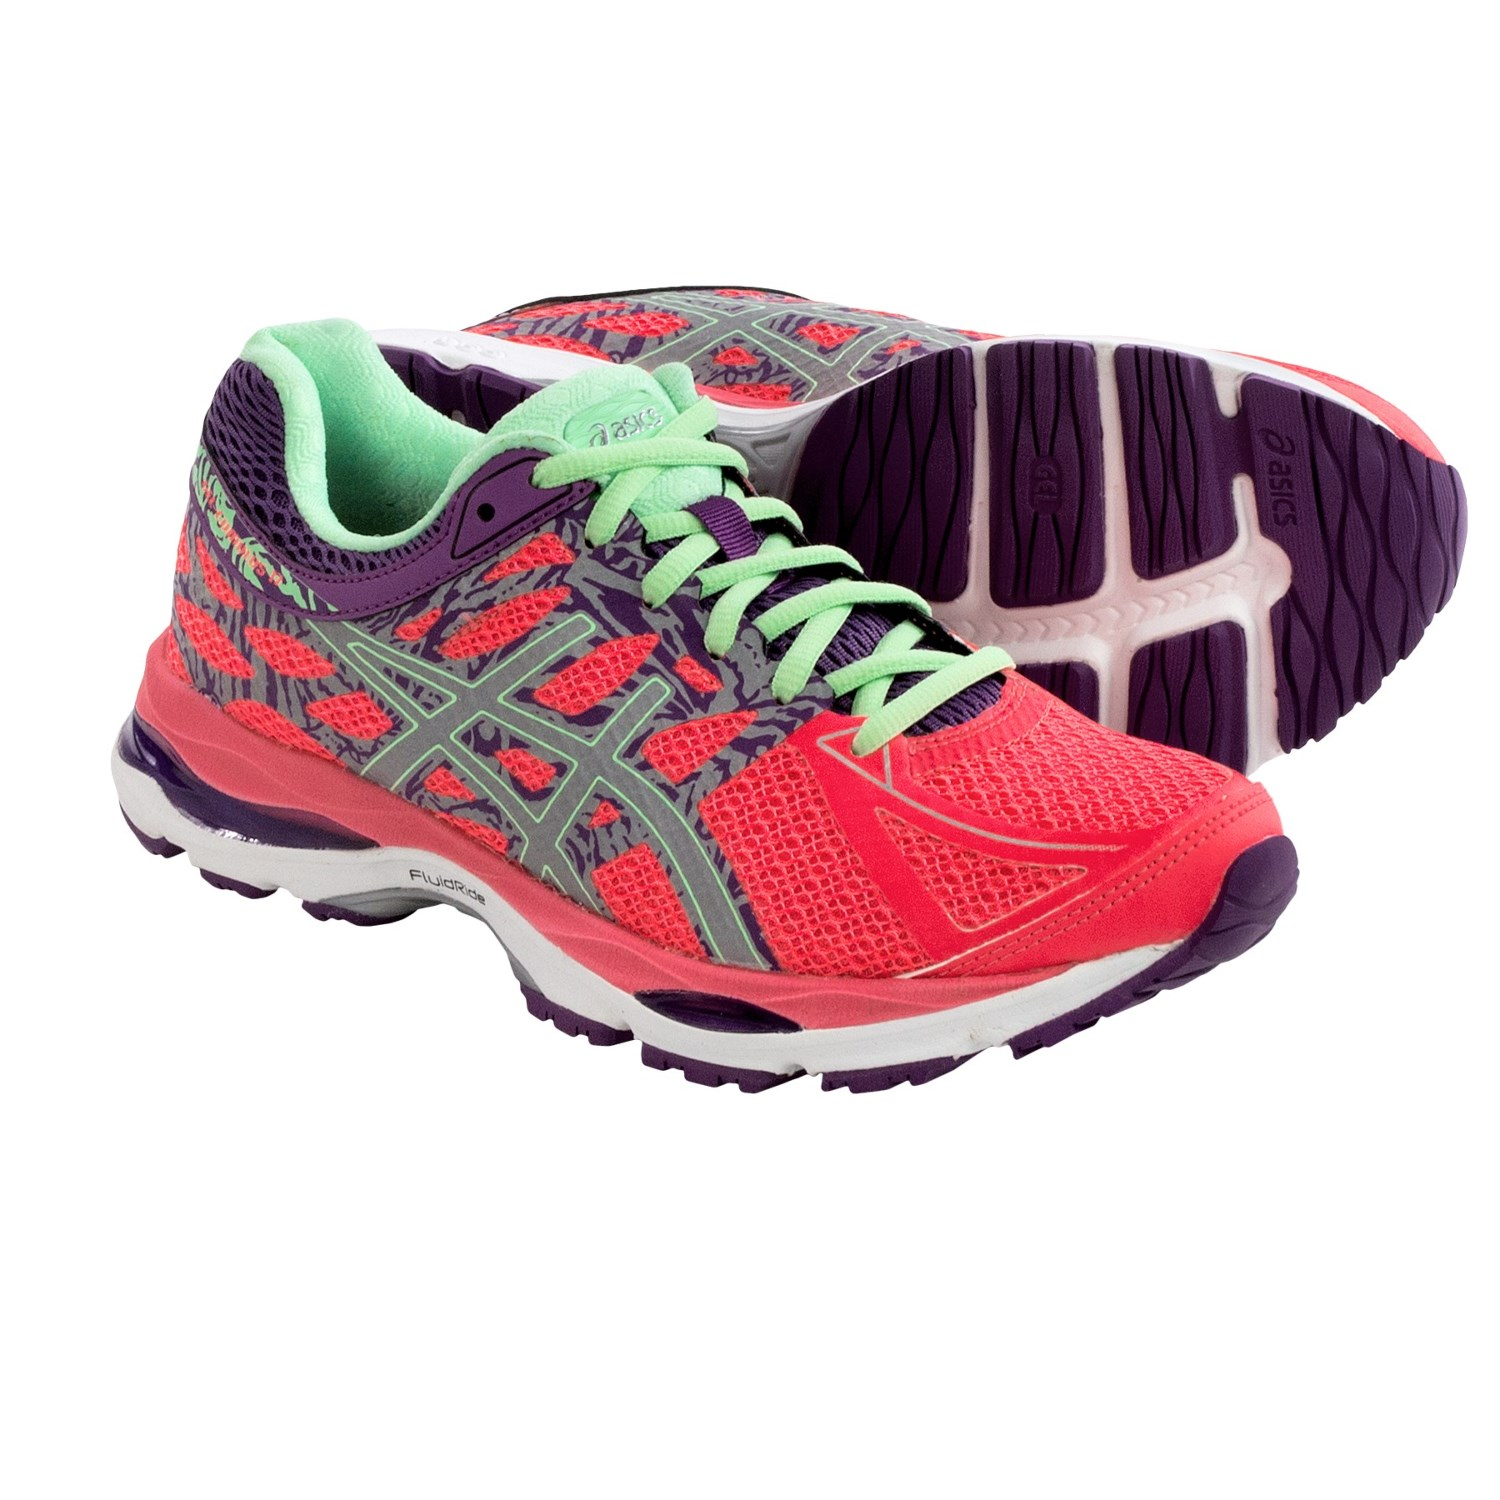 asics gel cumulus 17 lite show running shoes for women save 25. Black Bedroom Furniture Sets. Home Design Ideas